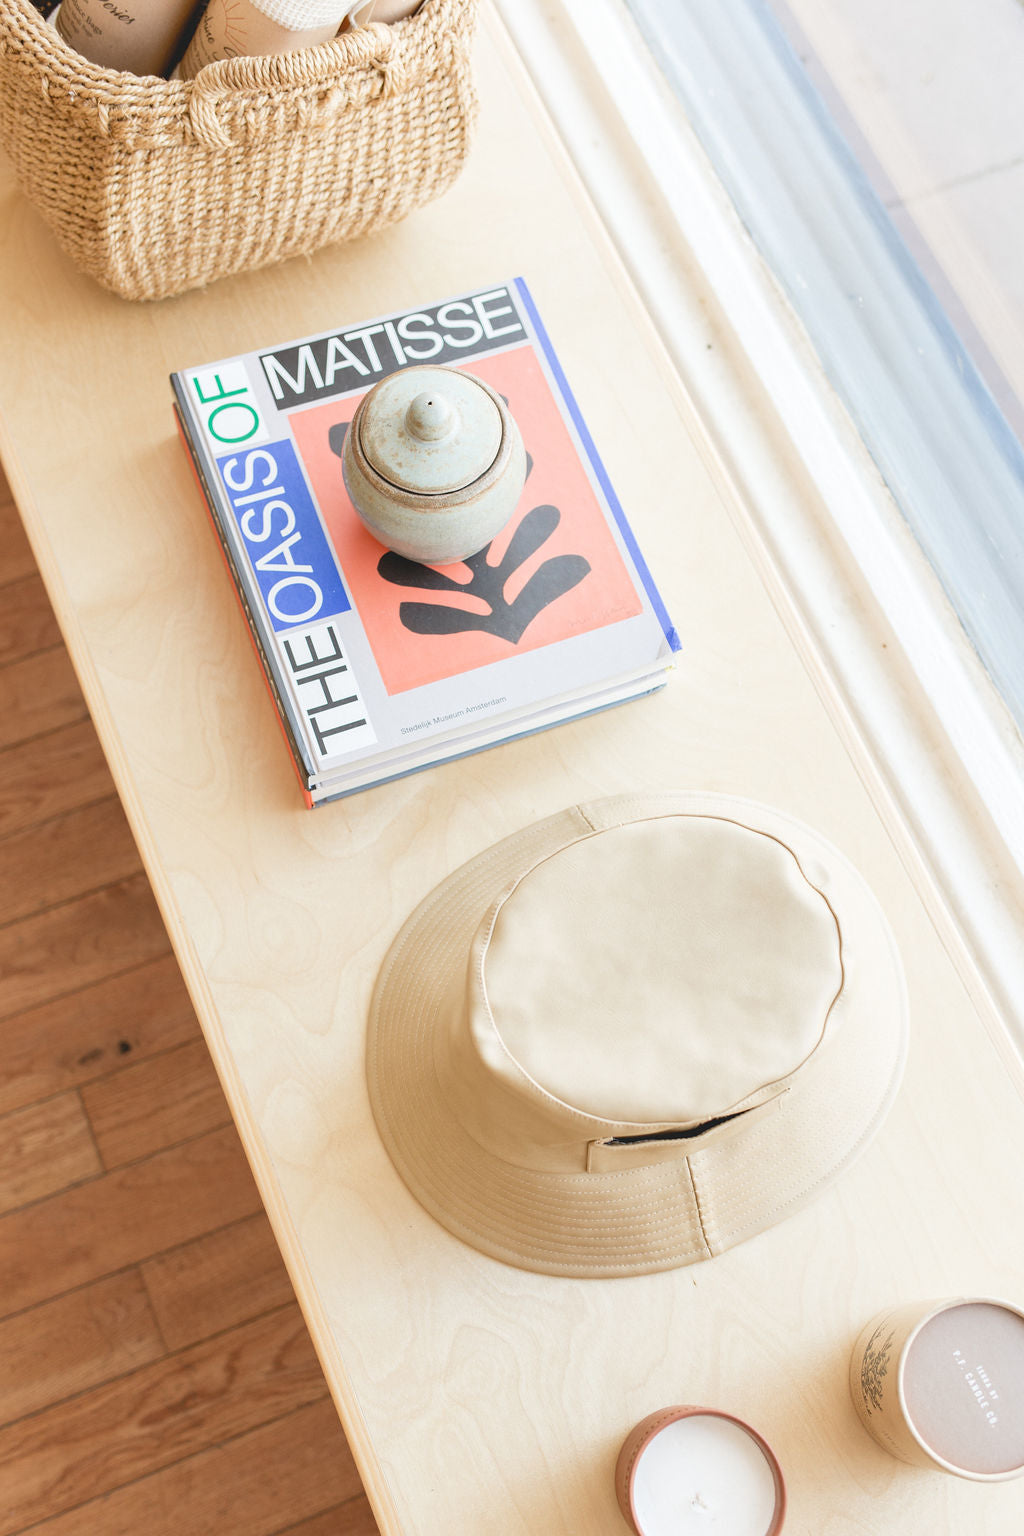 The Oasis of Matisse Book